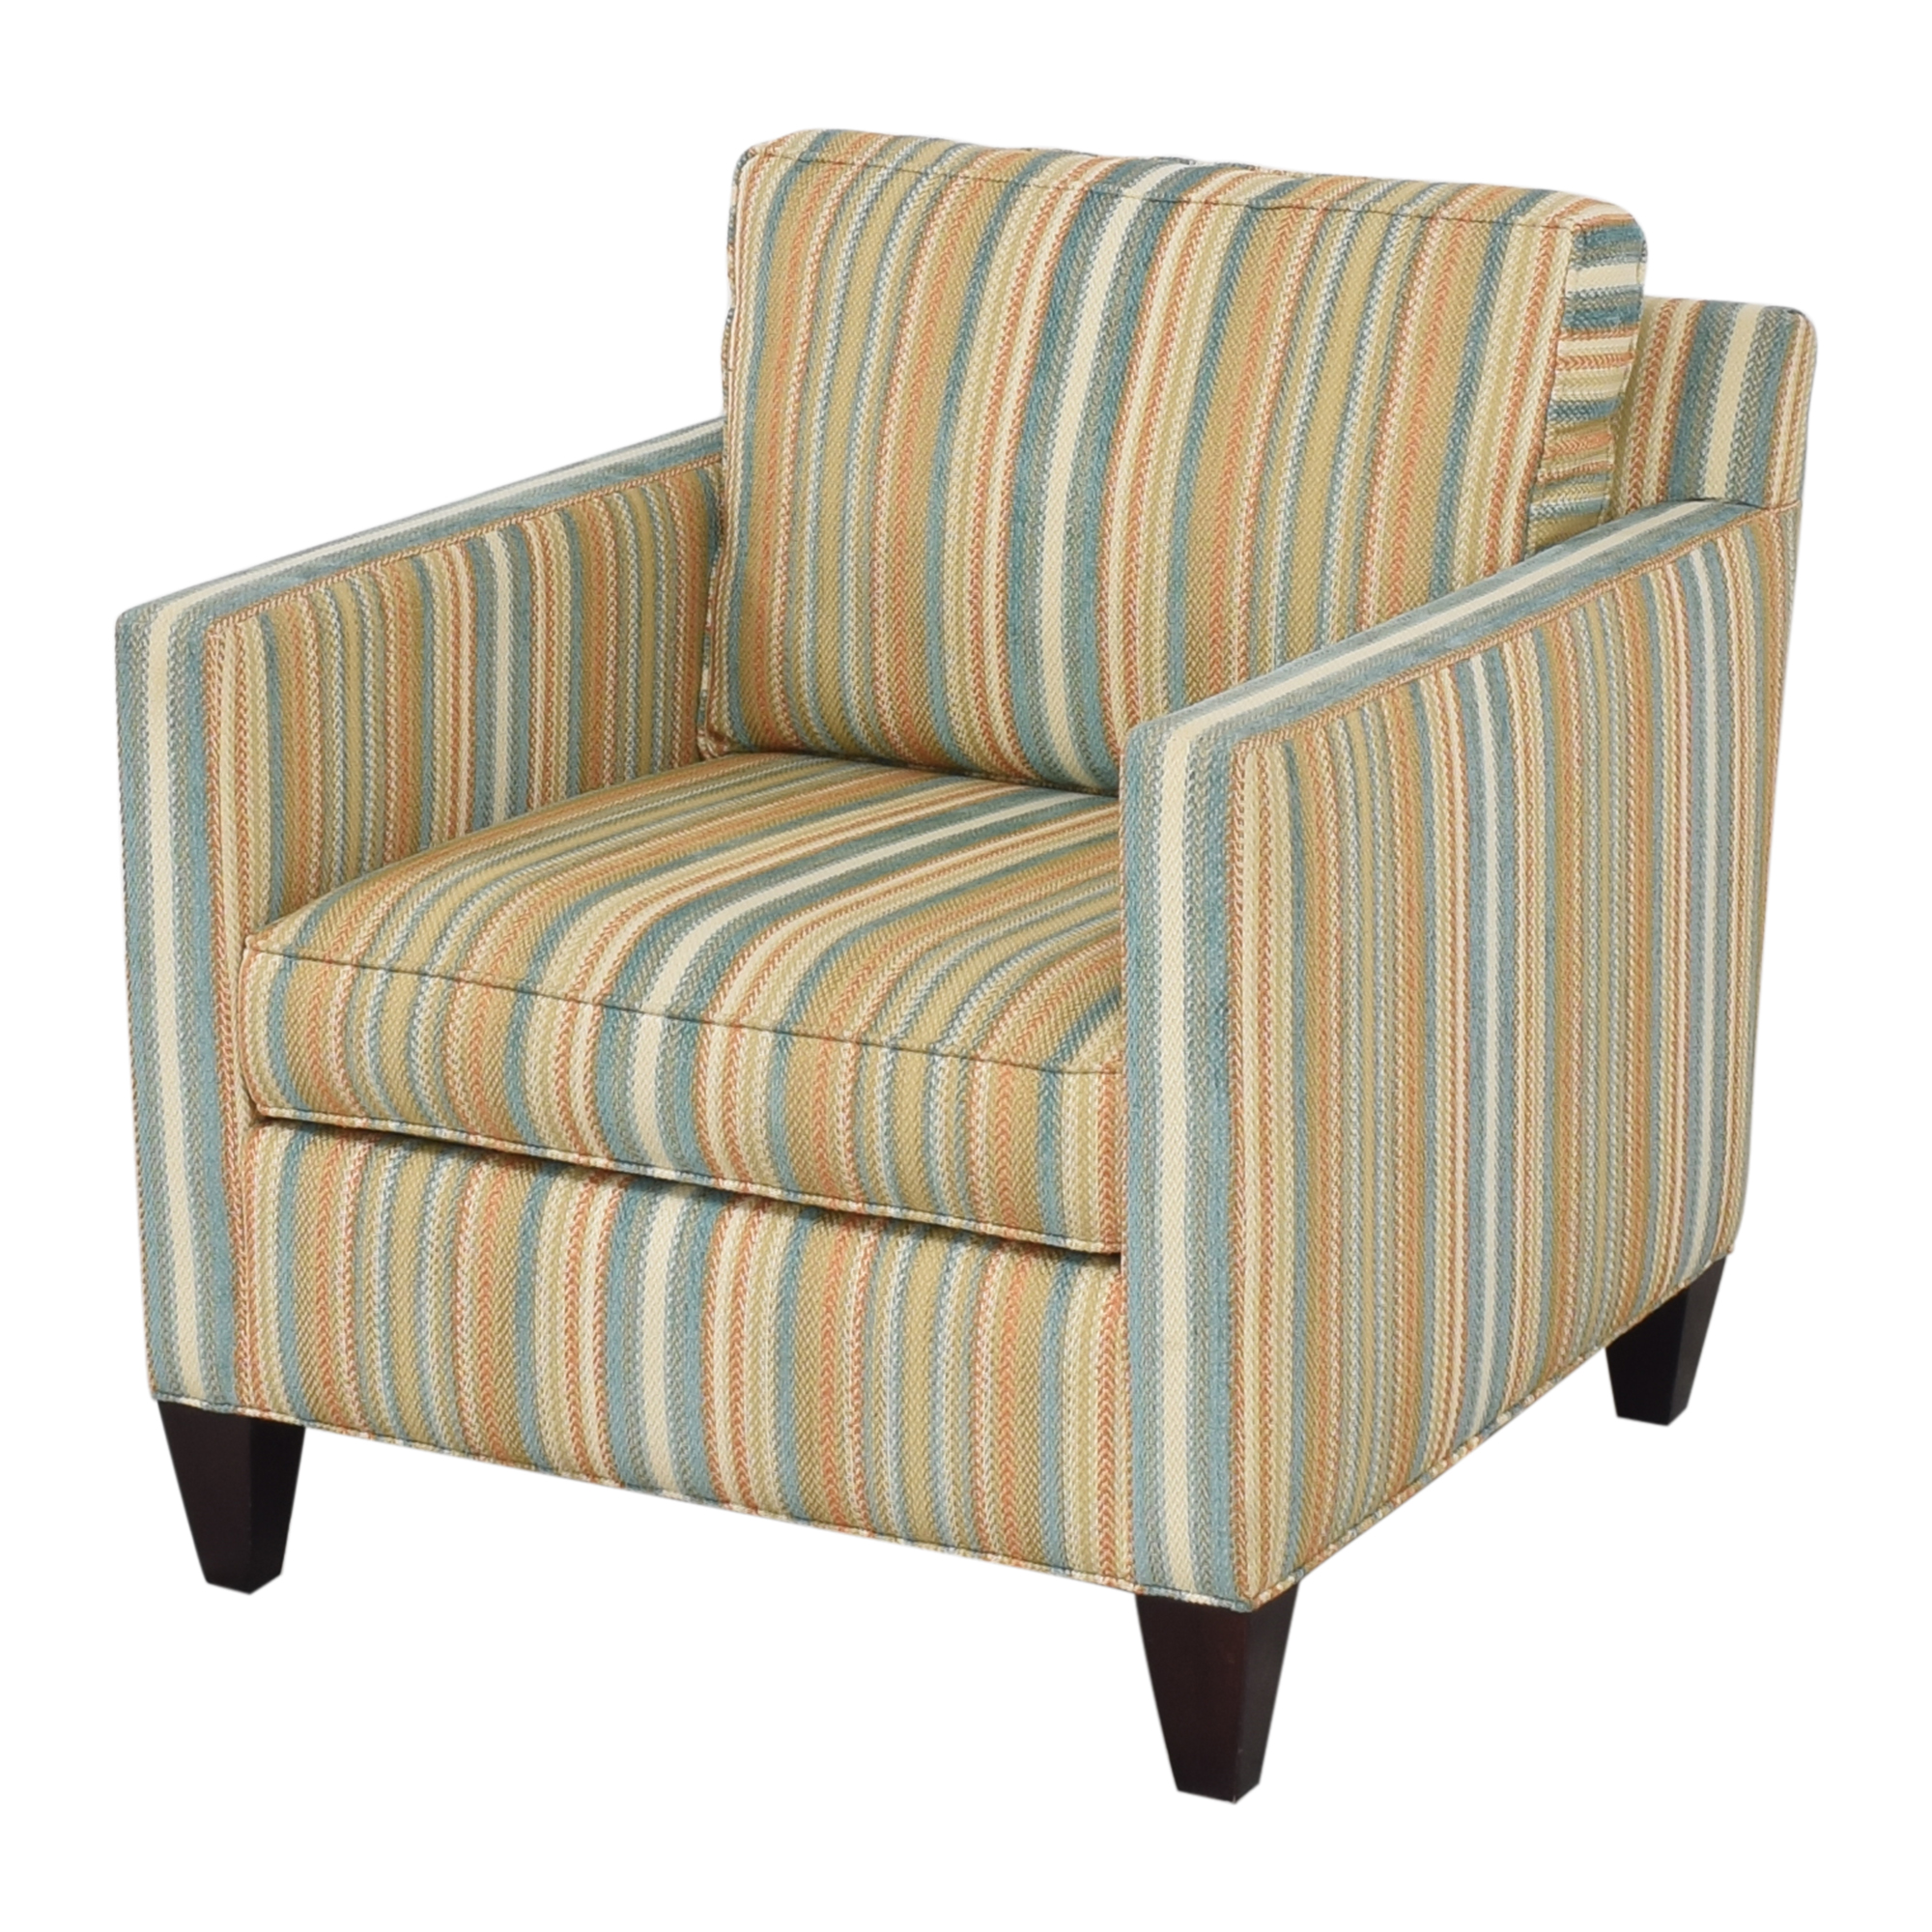 Thomasville Thomasville Striped Accent Chair Chairs